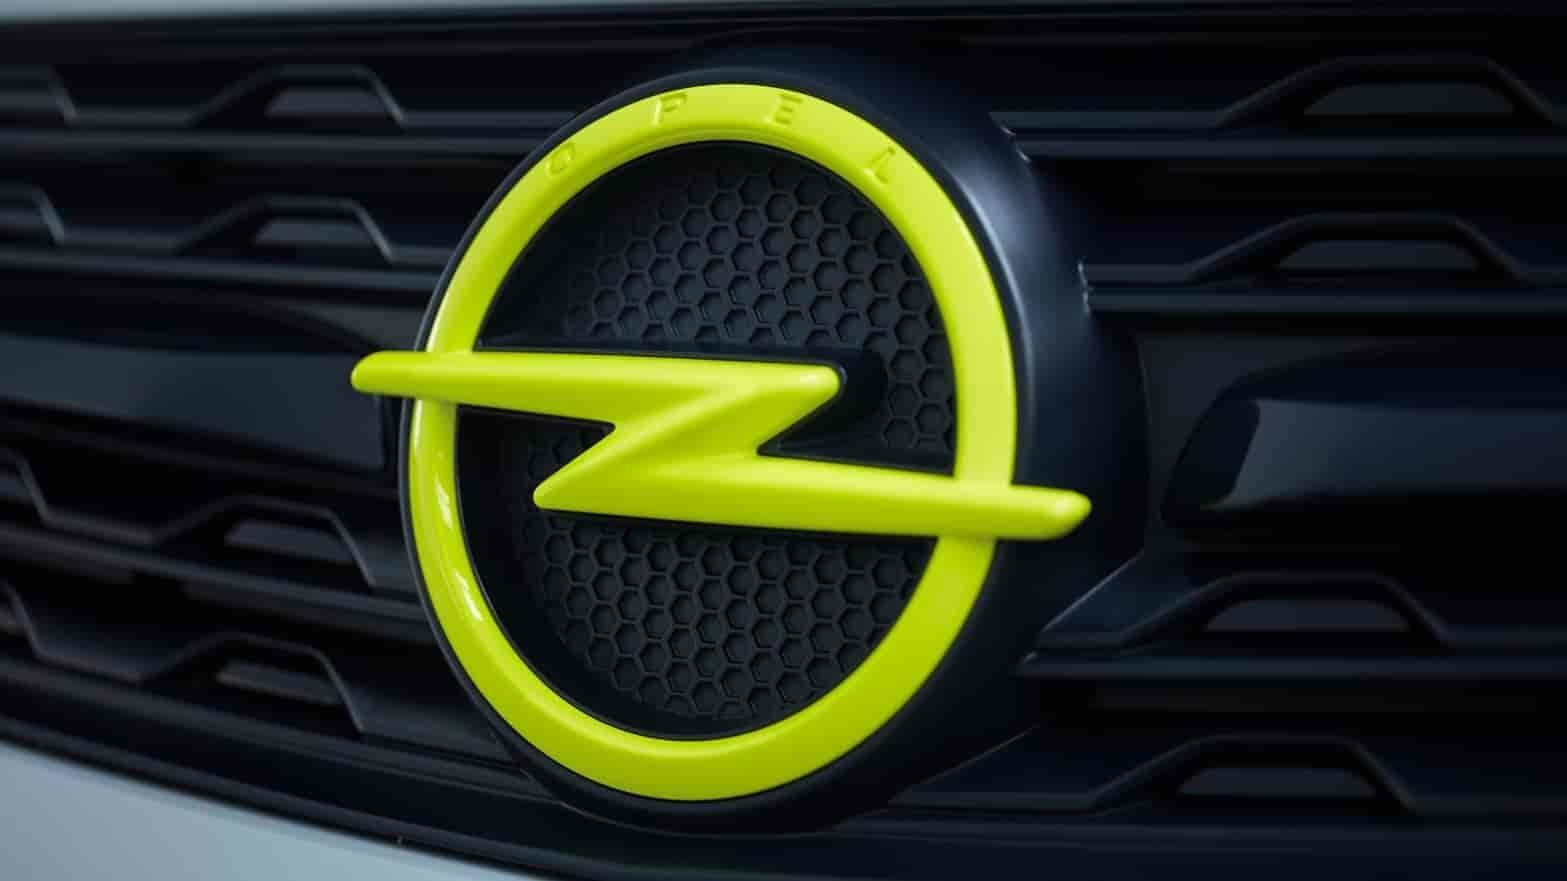 Opel's Special Vehicles division has modified a Zafira